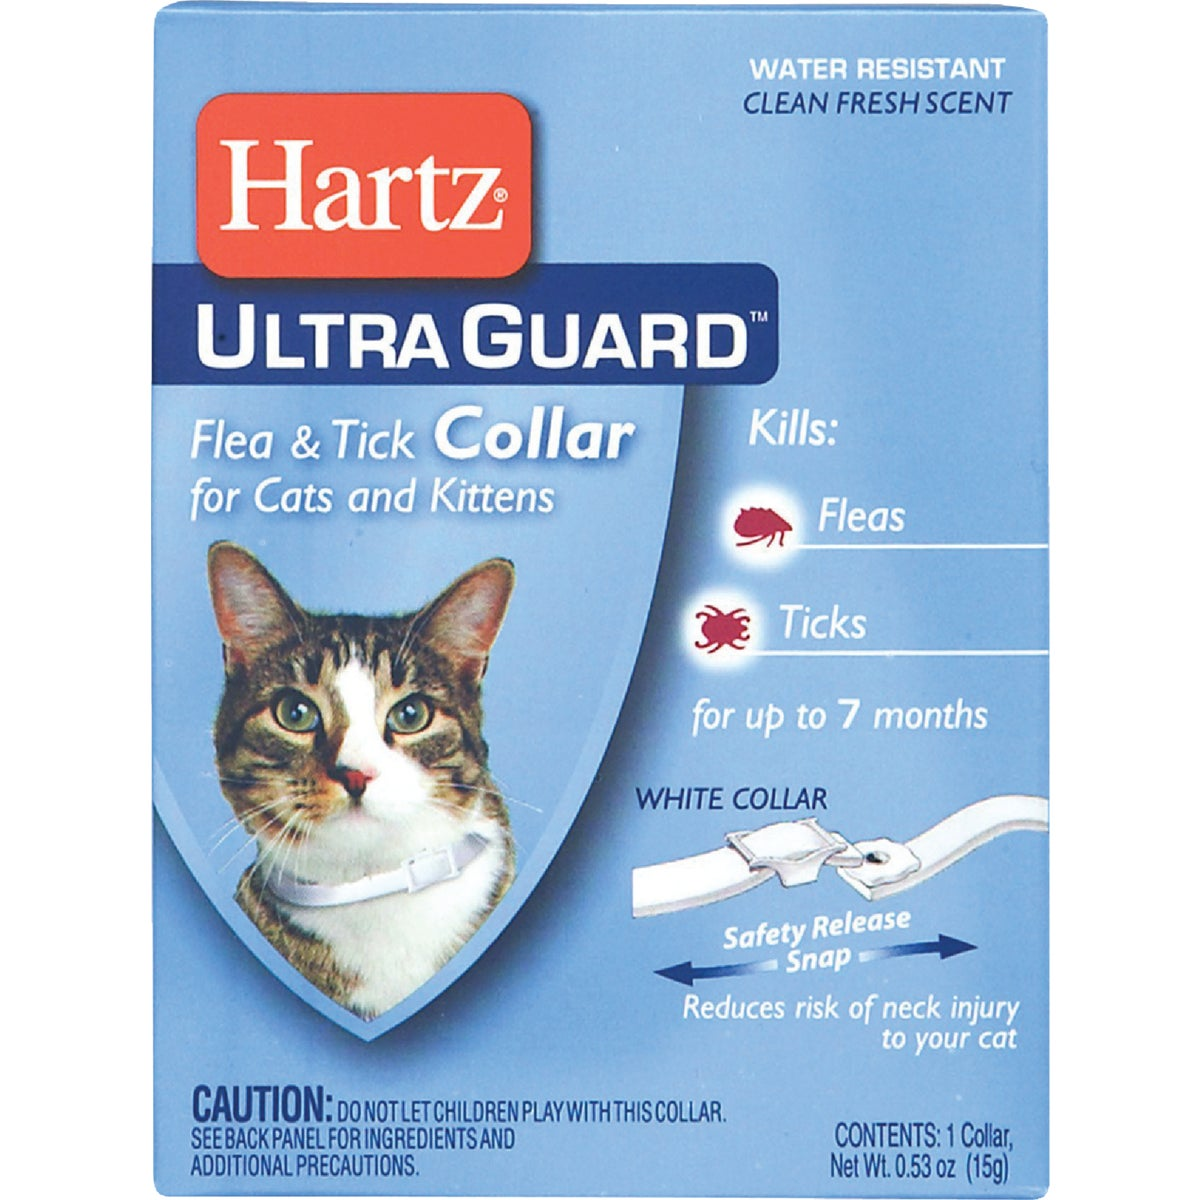 KITTEN & CAT F&T COLLAR